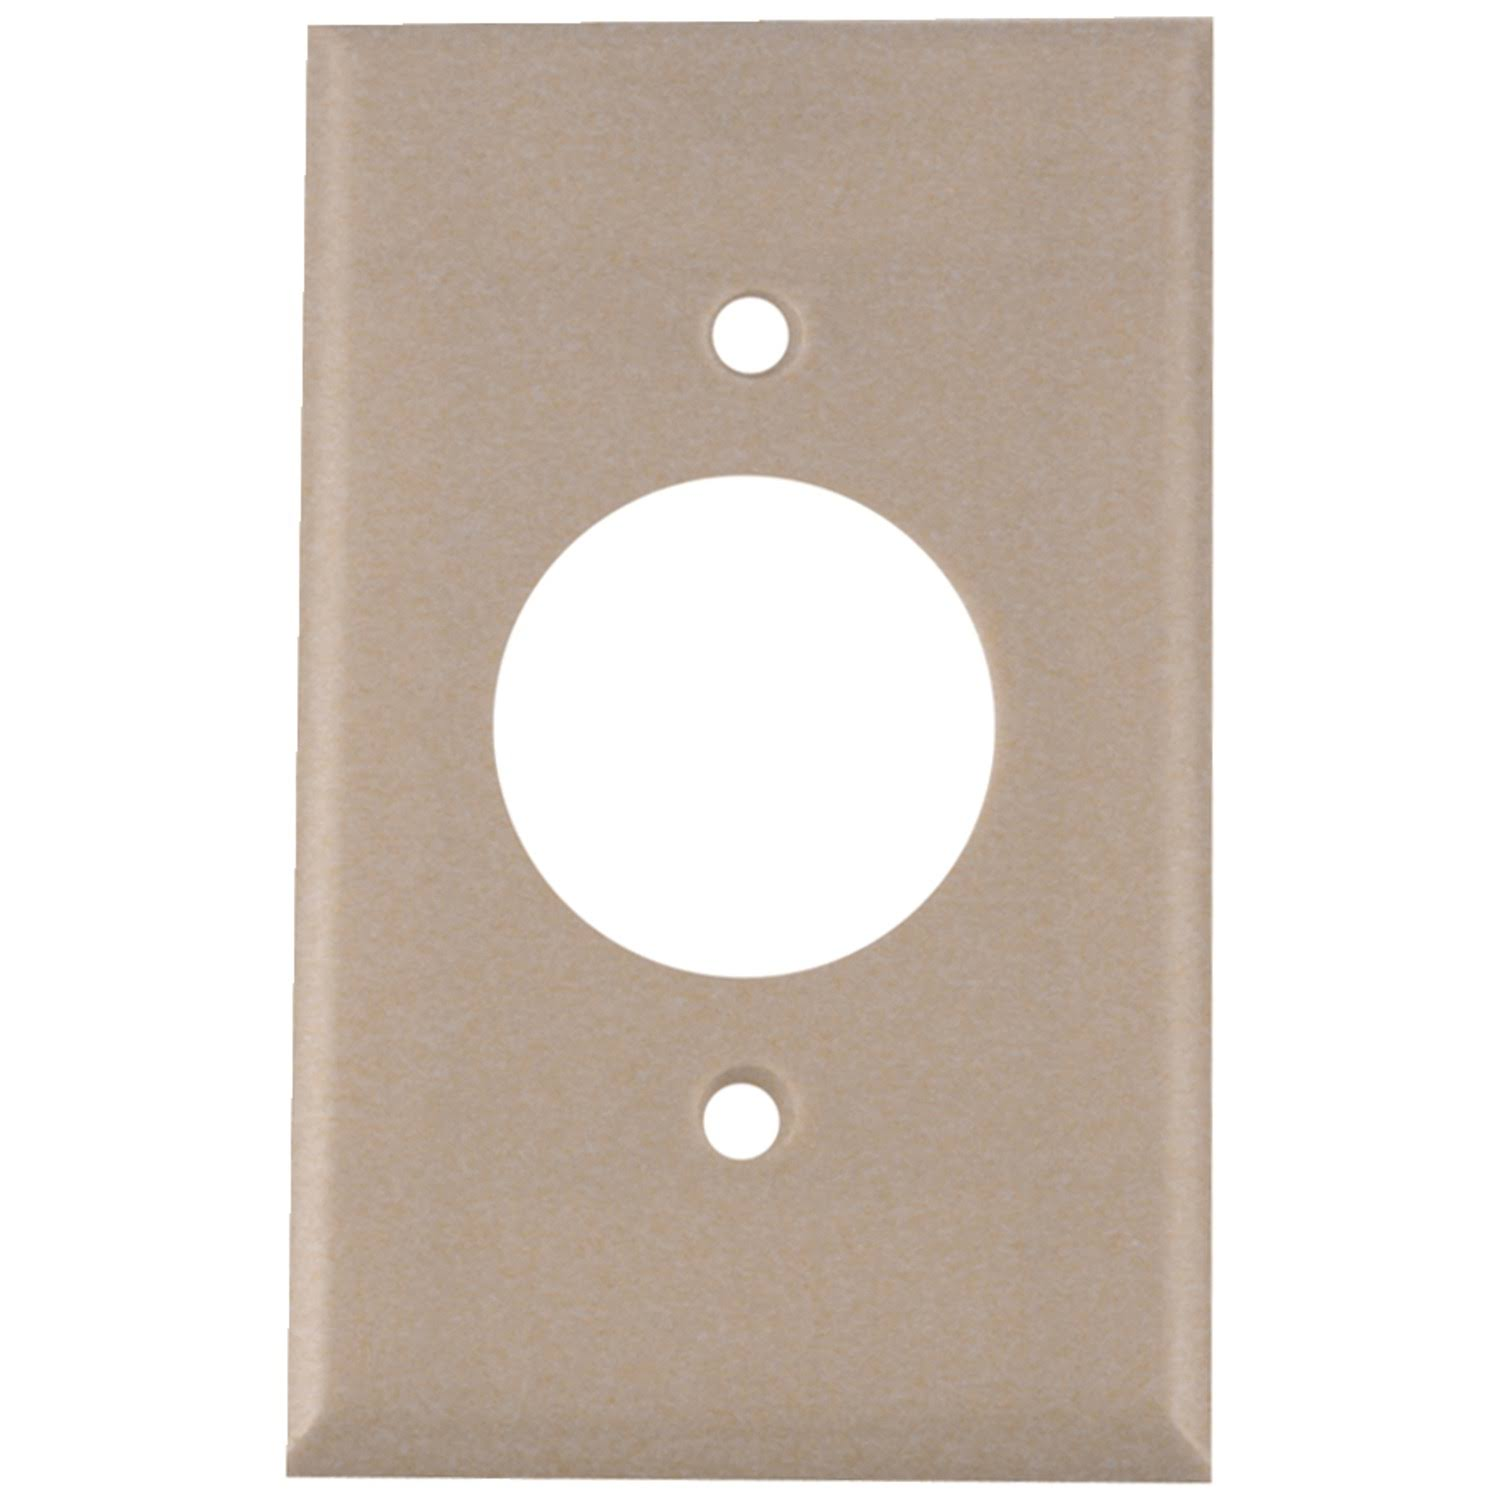 "Leviton G31371 Receptacle Wall Plate Single Outlet Covers - Ivory, 1.406"" 1 Gang"